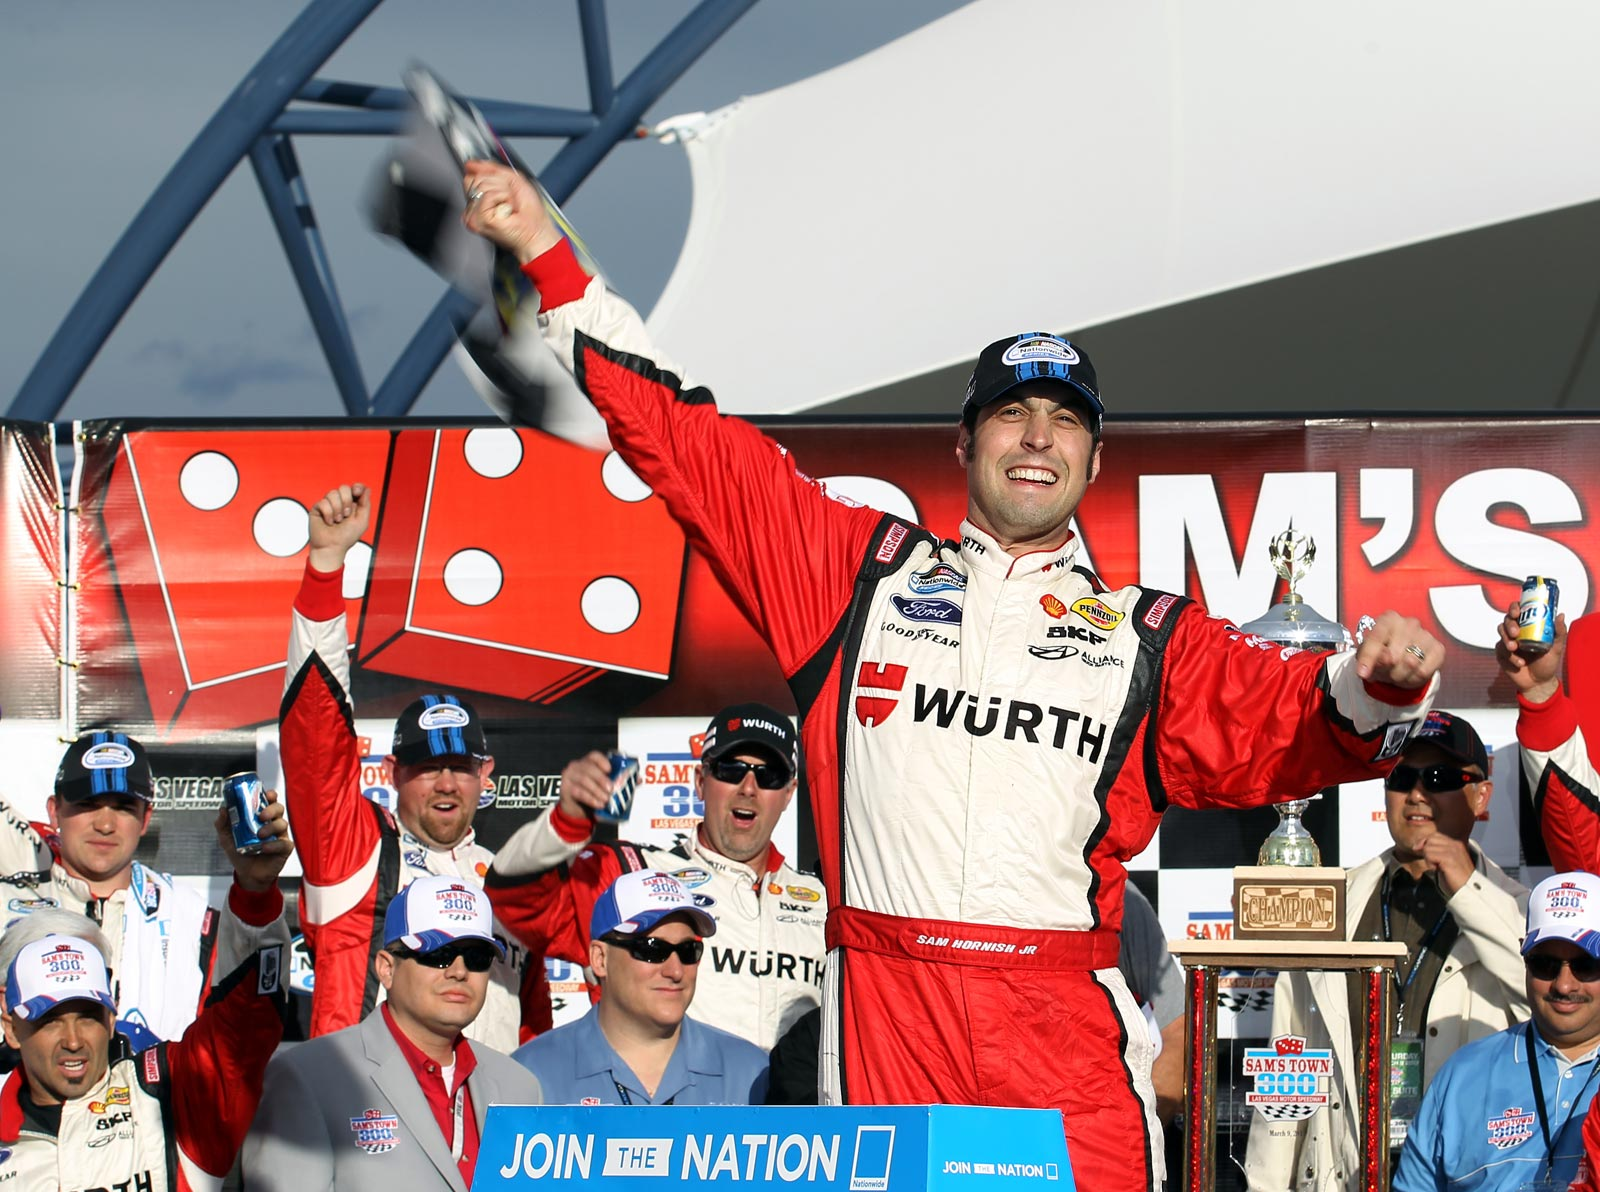 Sam-Hornish-Jr-victory-lane-Nationwide-Sams-town-300-nascar-las-vegas-saturday